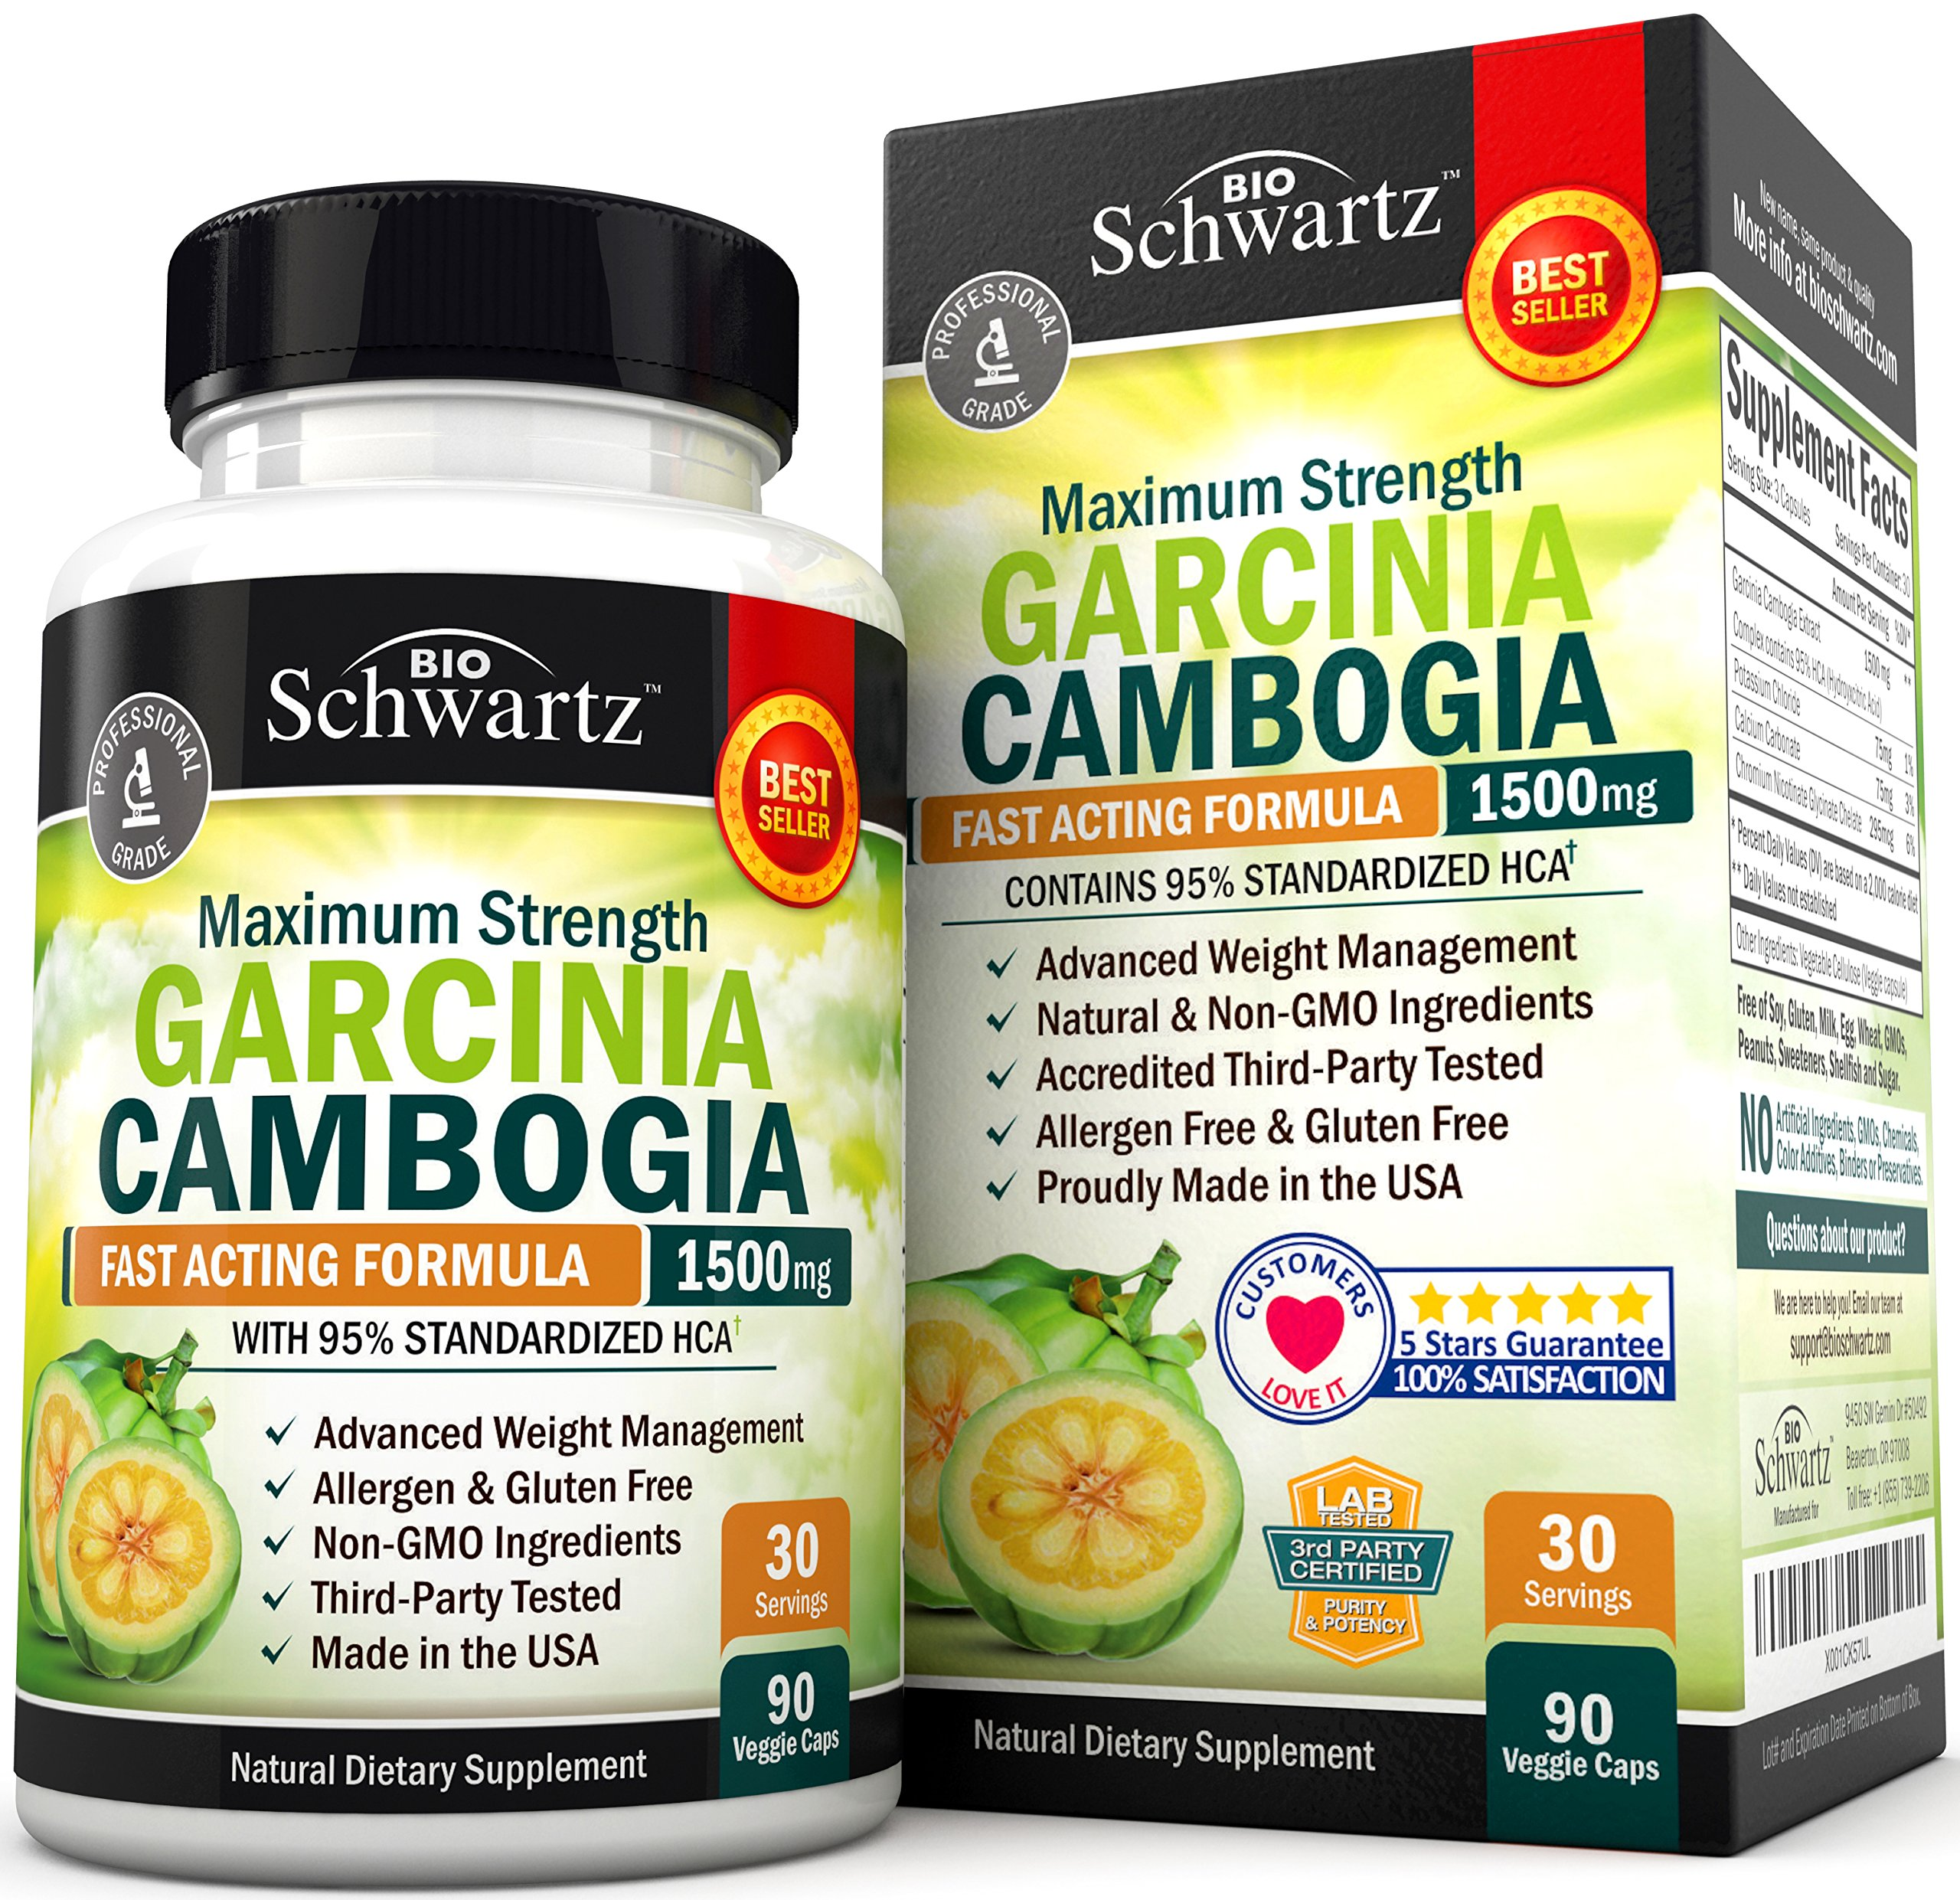 Garcinia Cambogia 95% HCA Pure Extract with Chromium. Fast Acting Appetite Suppressant, Extreme Carb Blocker & Fat Burner Supplement for Weight Loss & Fat Metabolism Best Garcinia Cambogia Diet Pills by BioSchwartz